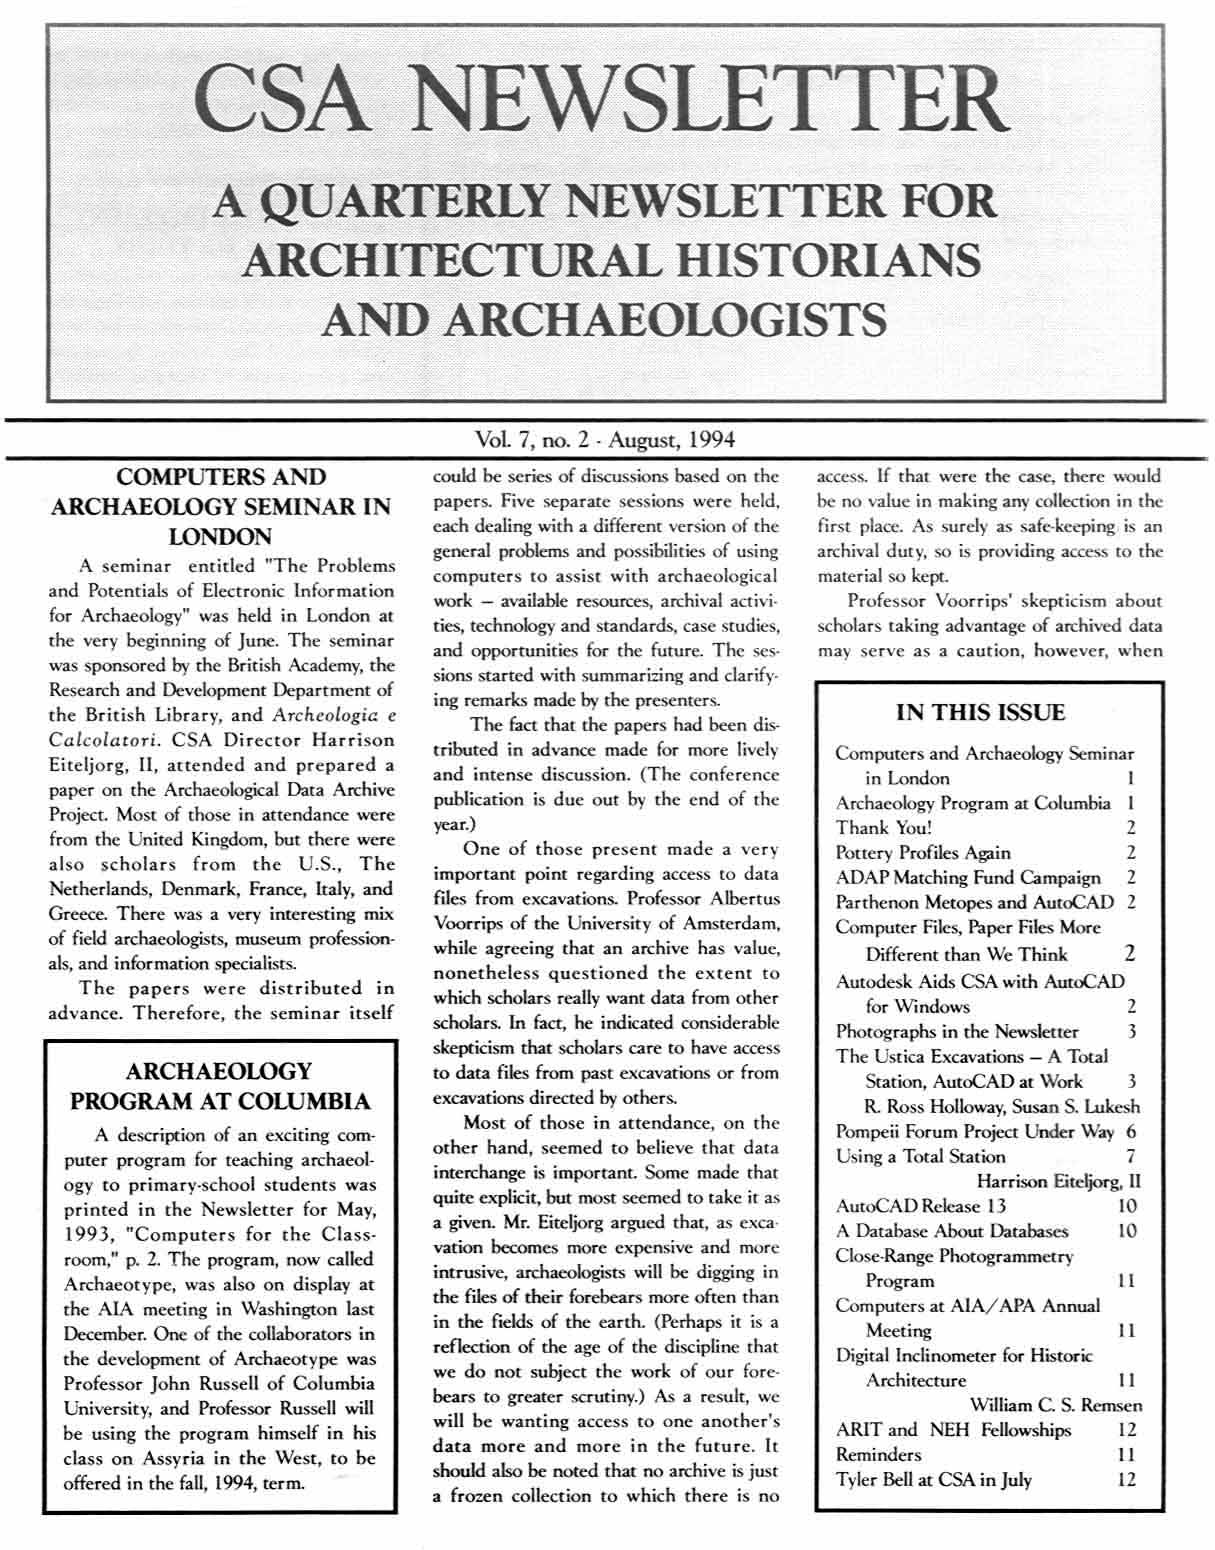 CSA Newsletter, Aug. 1994: Page 1